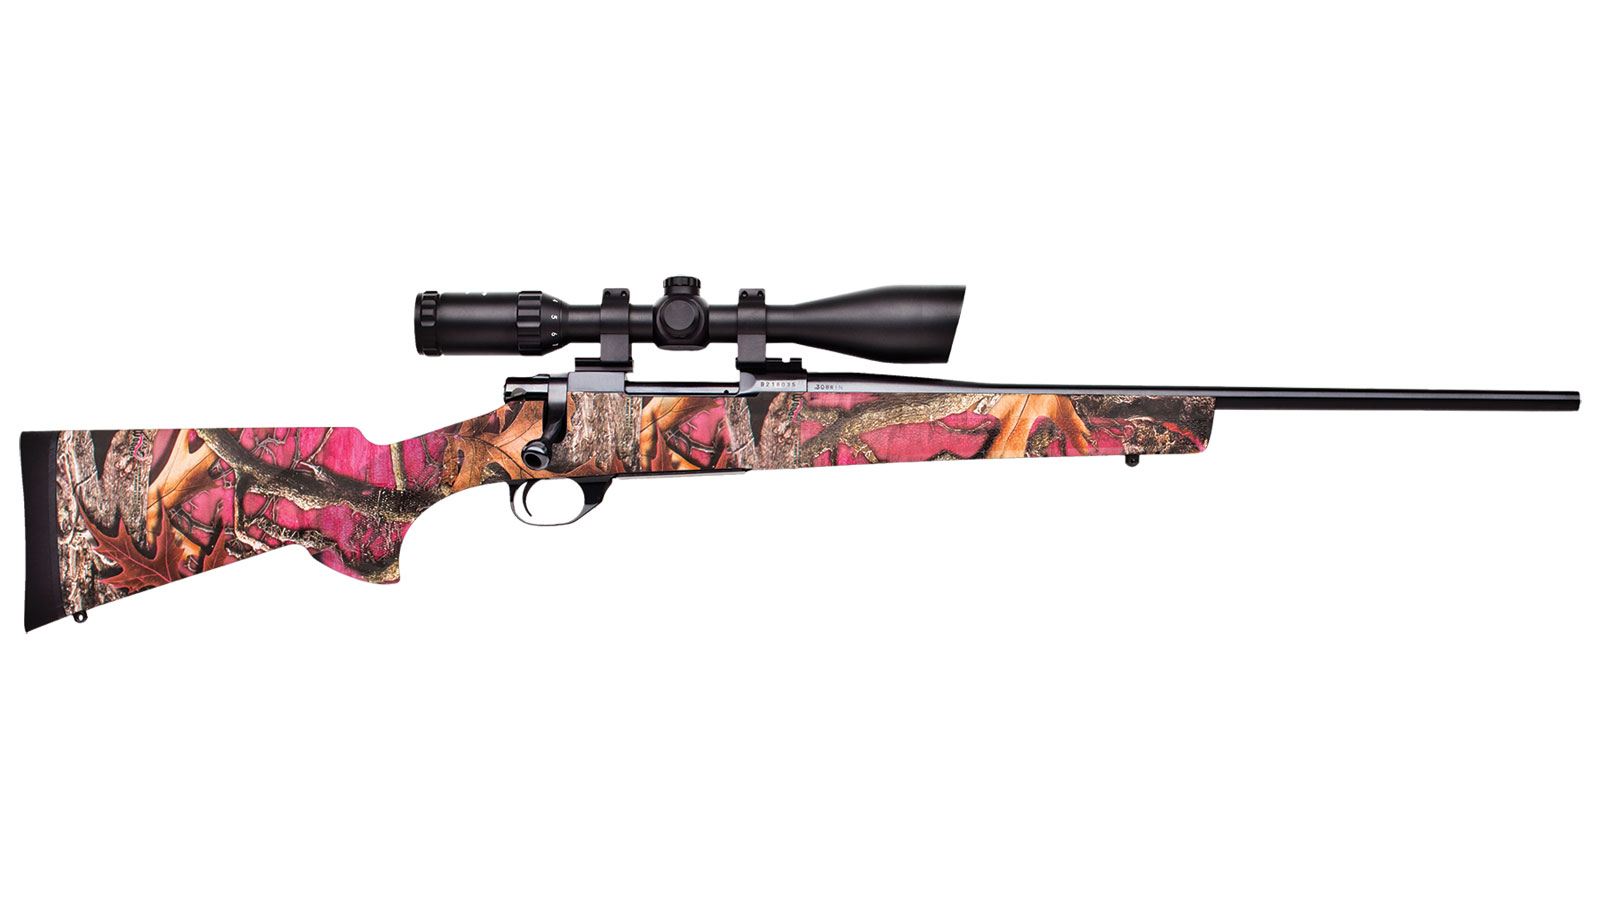 Legacy Sports Howa Hogue Youth Nighteater Foxy Woods Camo .308 Win 20-inch 4rd with 3-9X42 Scope